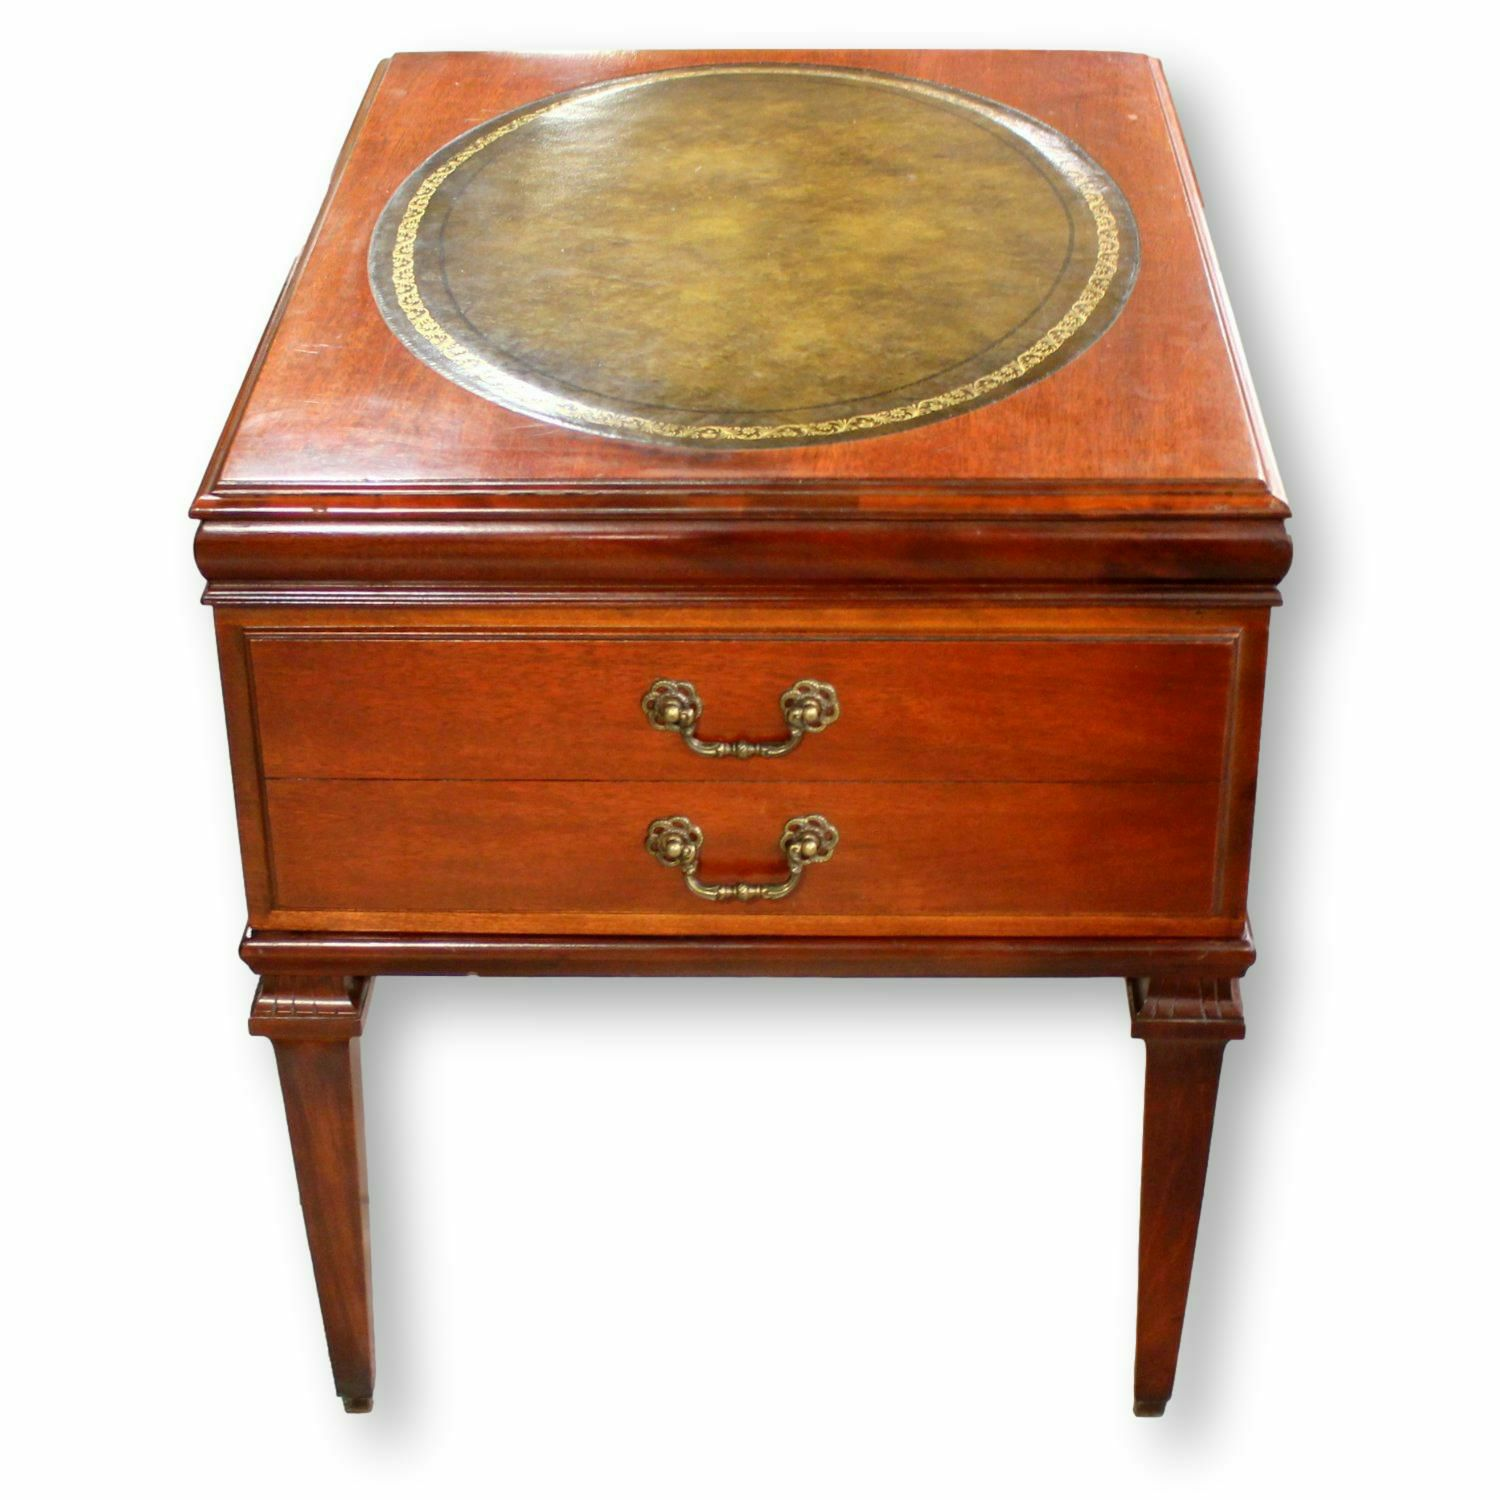 Mahogany-Leather-Top-Vintage-Table_92335A.jpg